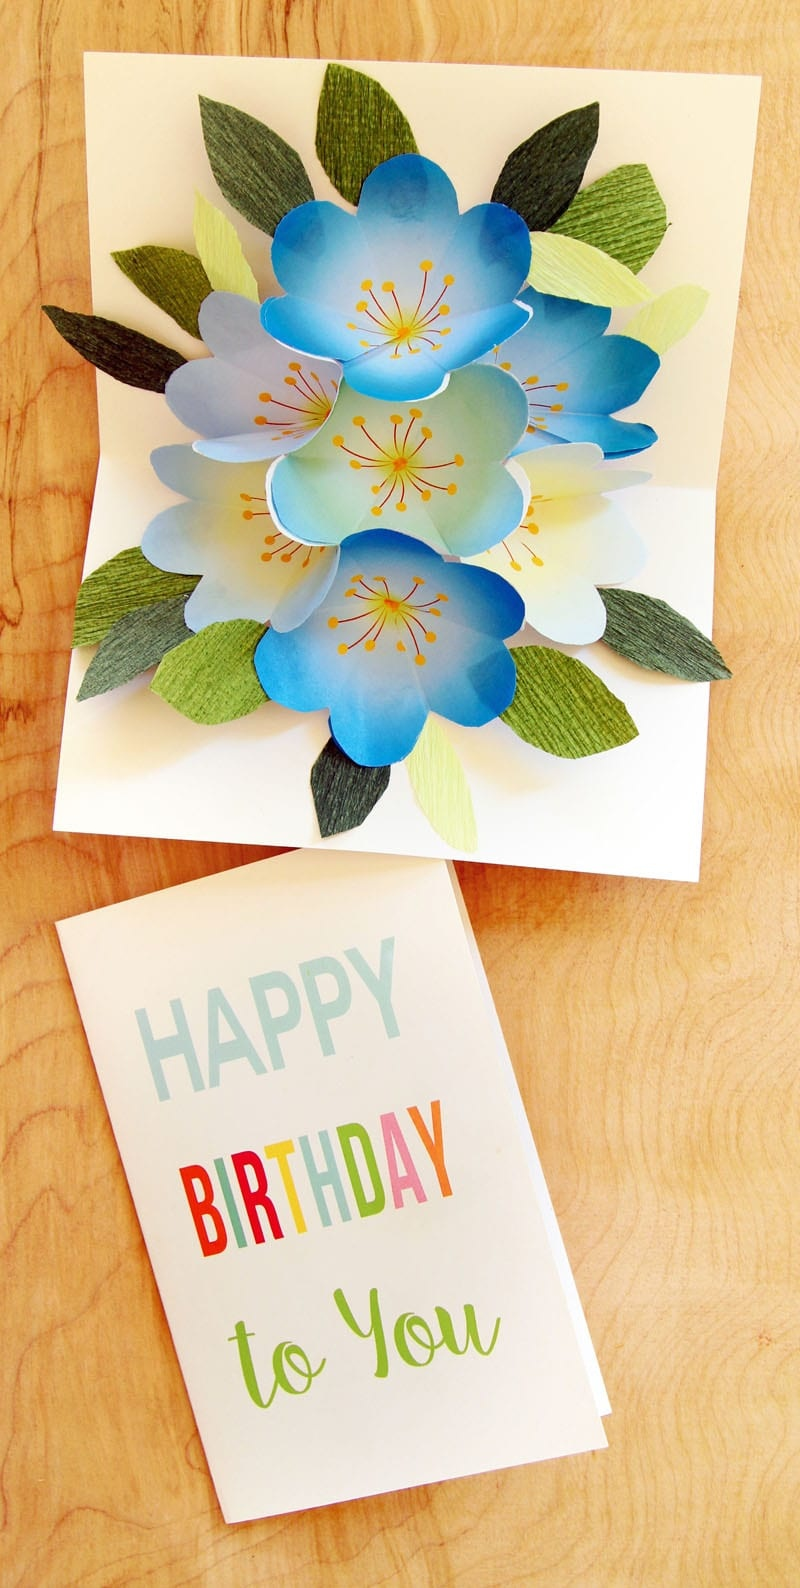 Free Printable Happy Birthday Card With Pop Up Bouquet - A Piece Of - Free Printable Pop Up Birthday Card Templates